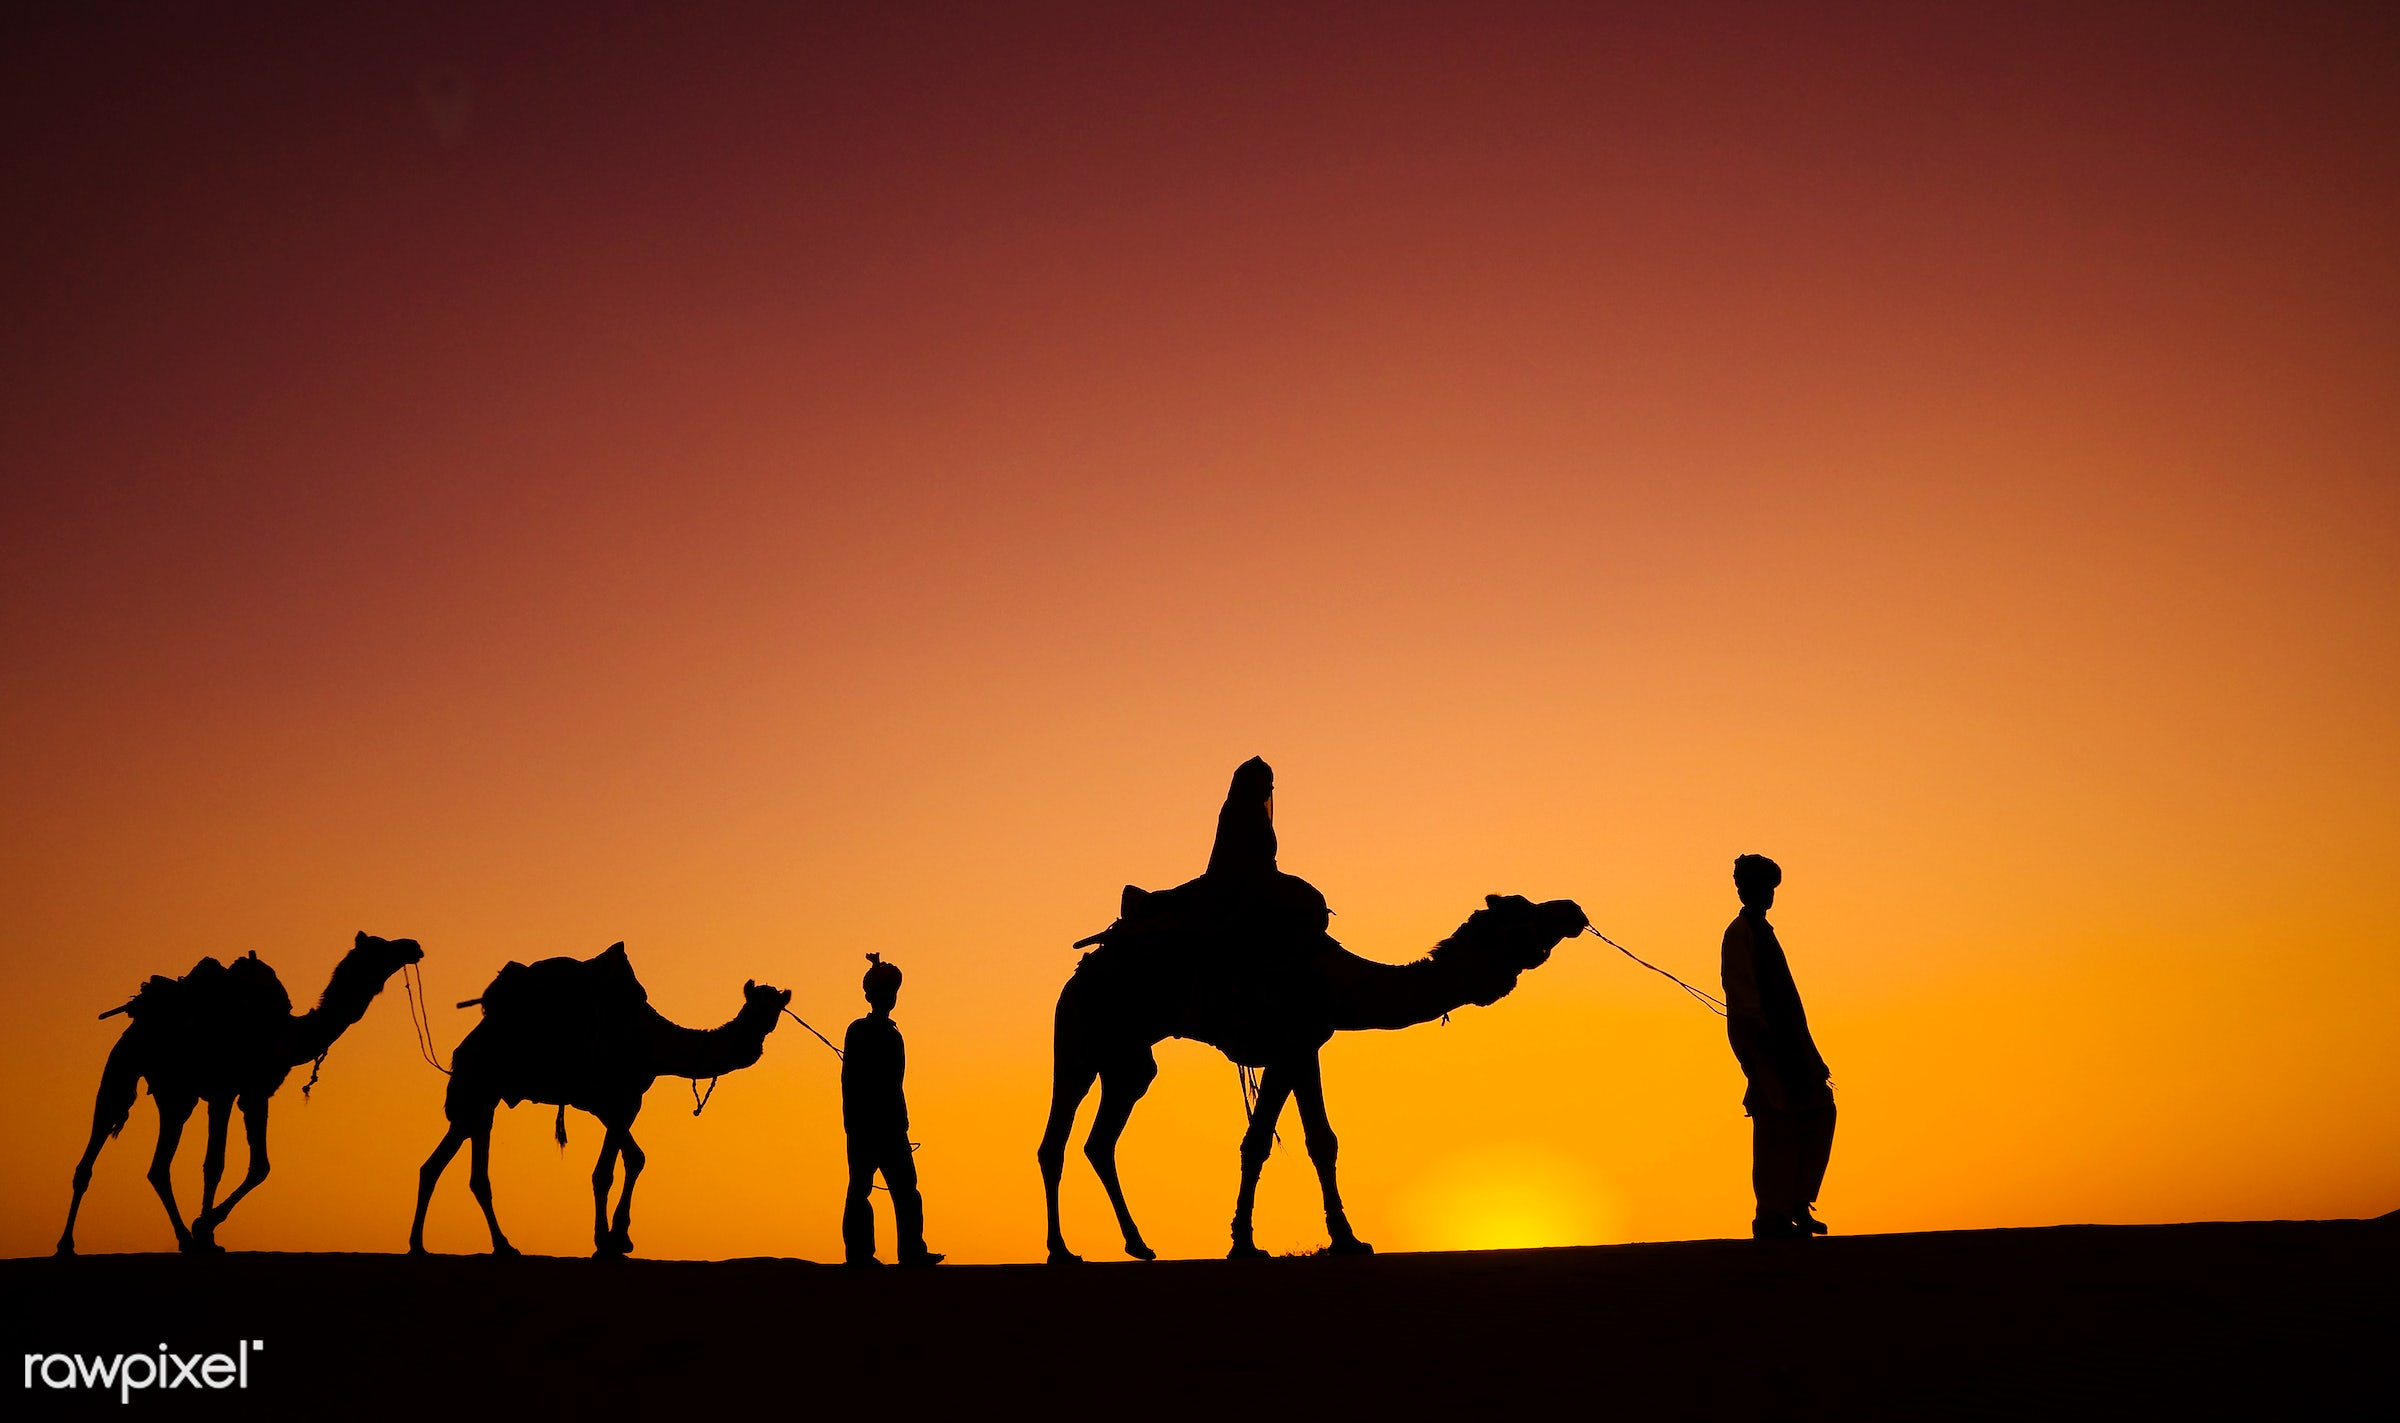 Indian men walking through the desert with their camels - animal themes, asia, camel, culture, desert, dusk, exoticism, heat...